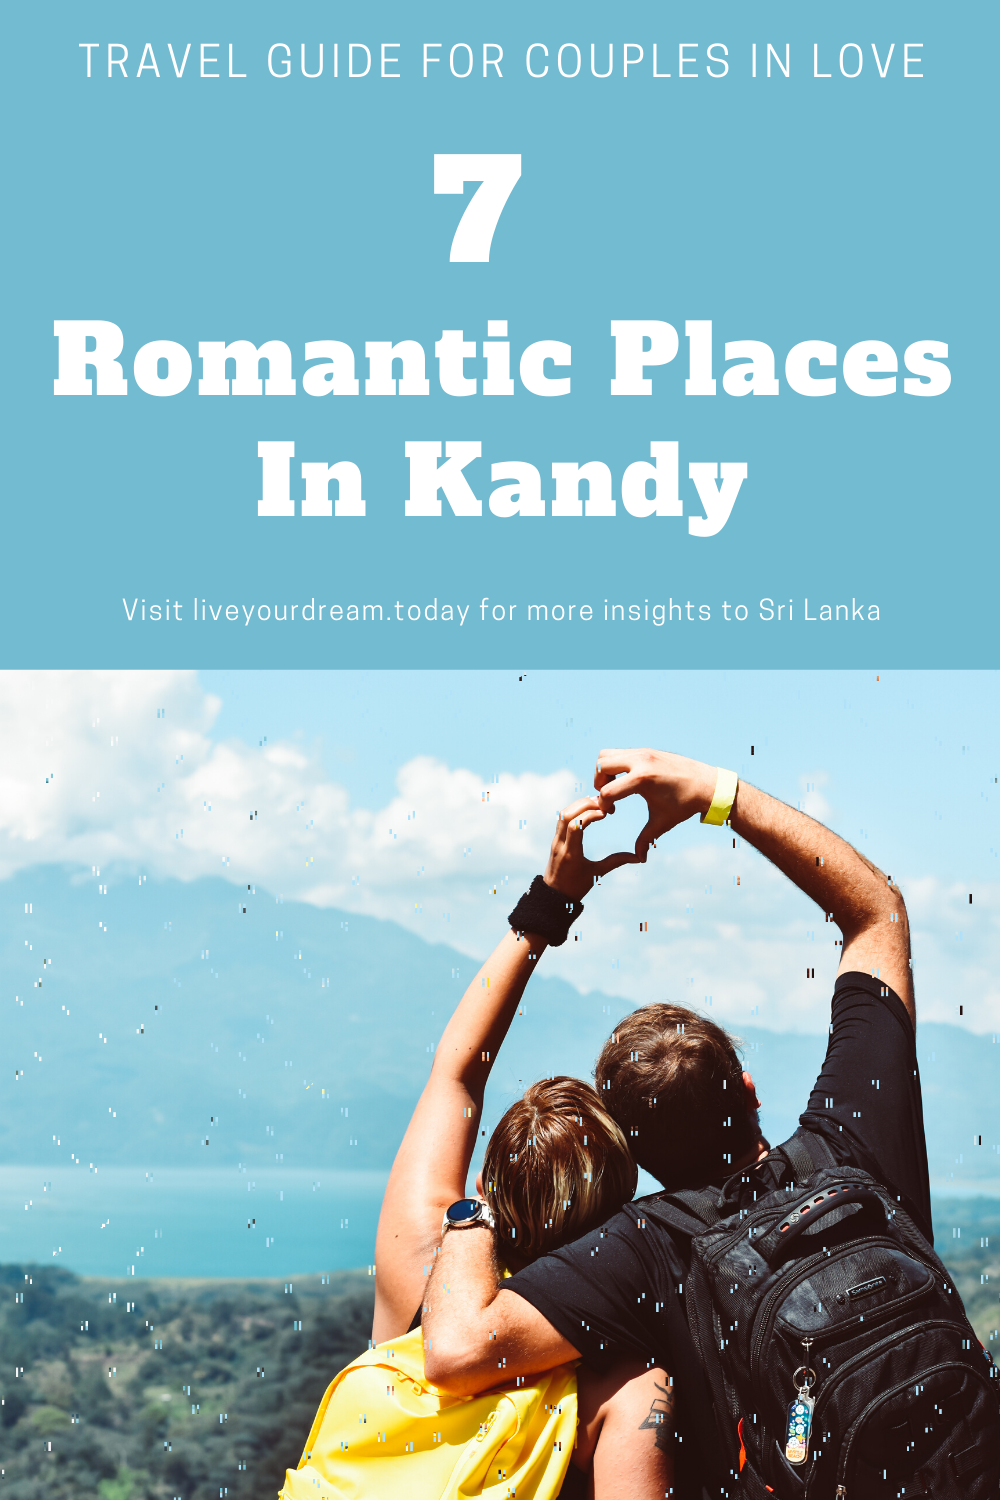 best places for romantic getaway in kandy sri lanka